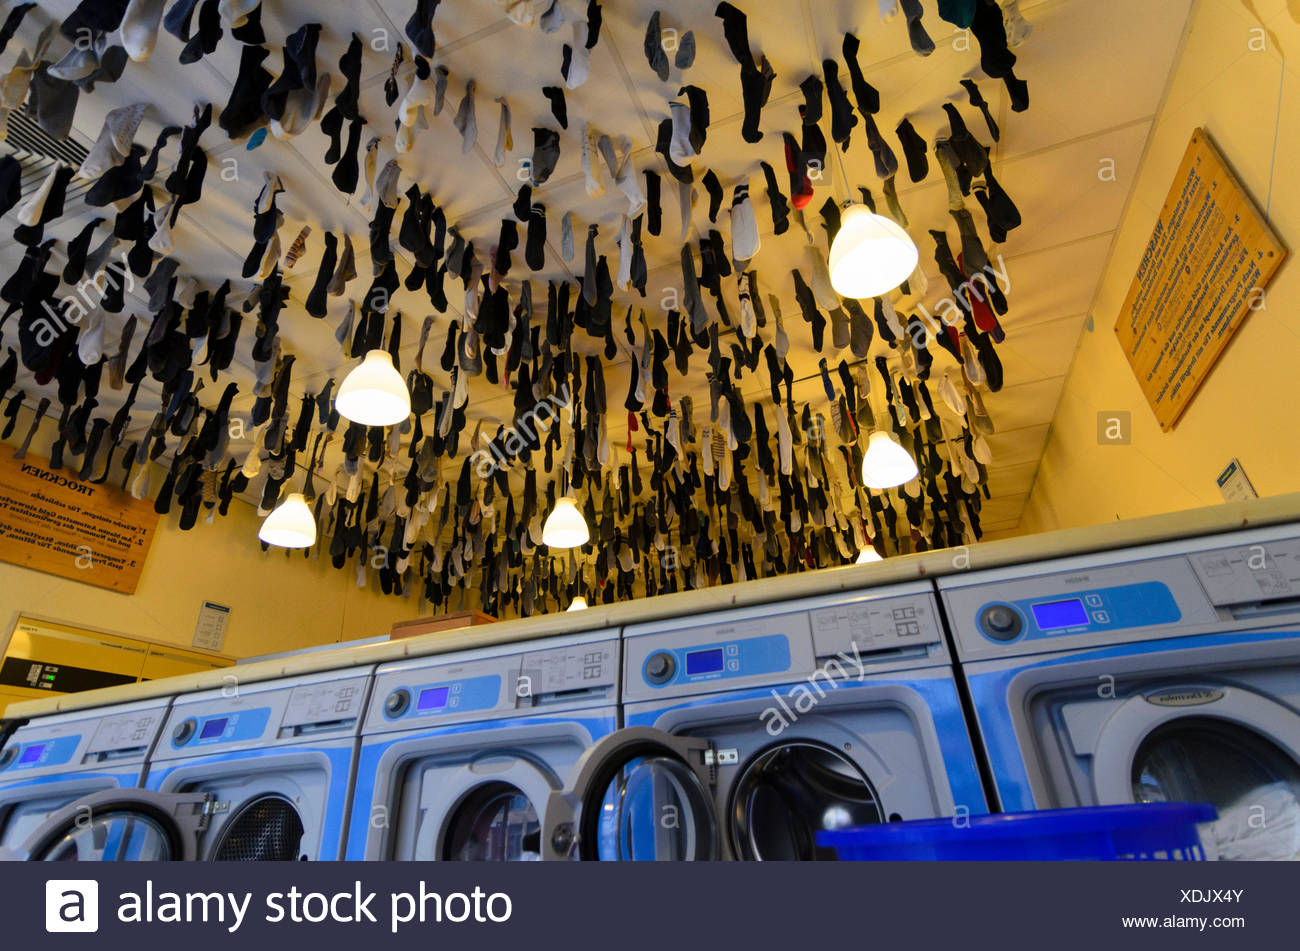 laundrette in the Äußere Neustadt, in the washing machin forgotten socks hanging from the ceiling, Germany, Saxony, Dresden - Stock Image